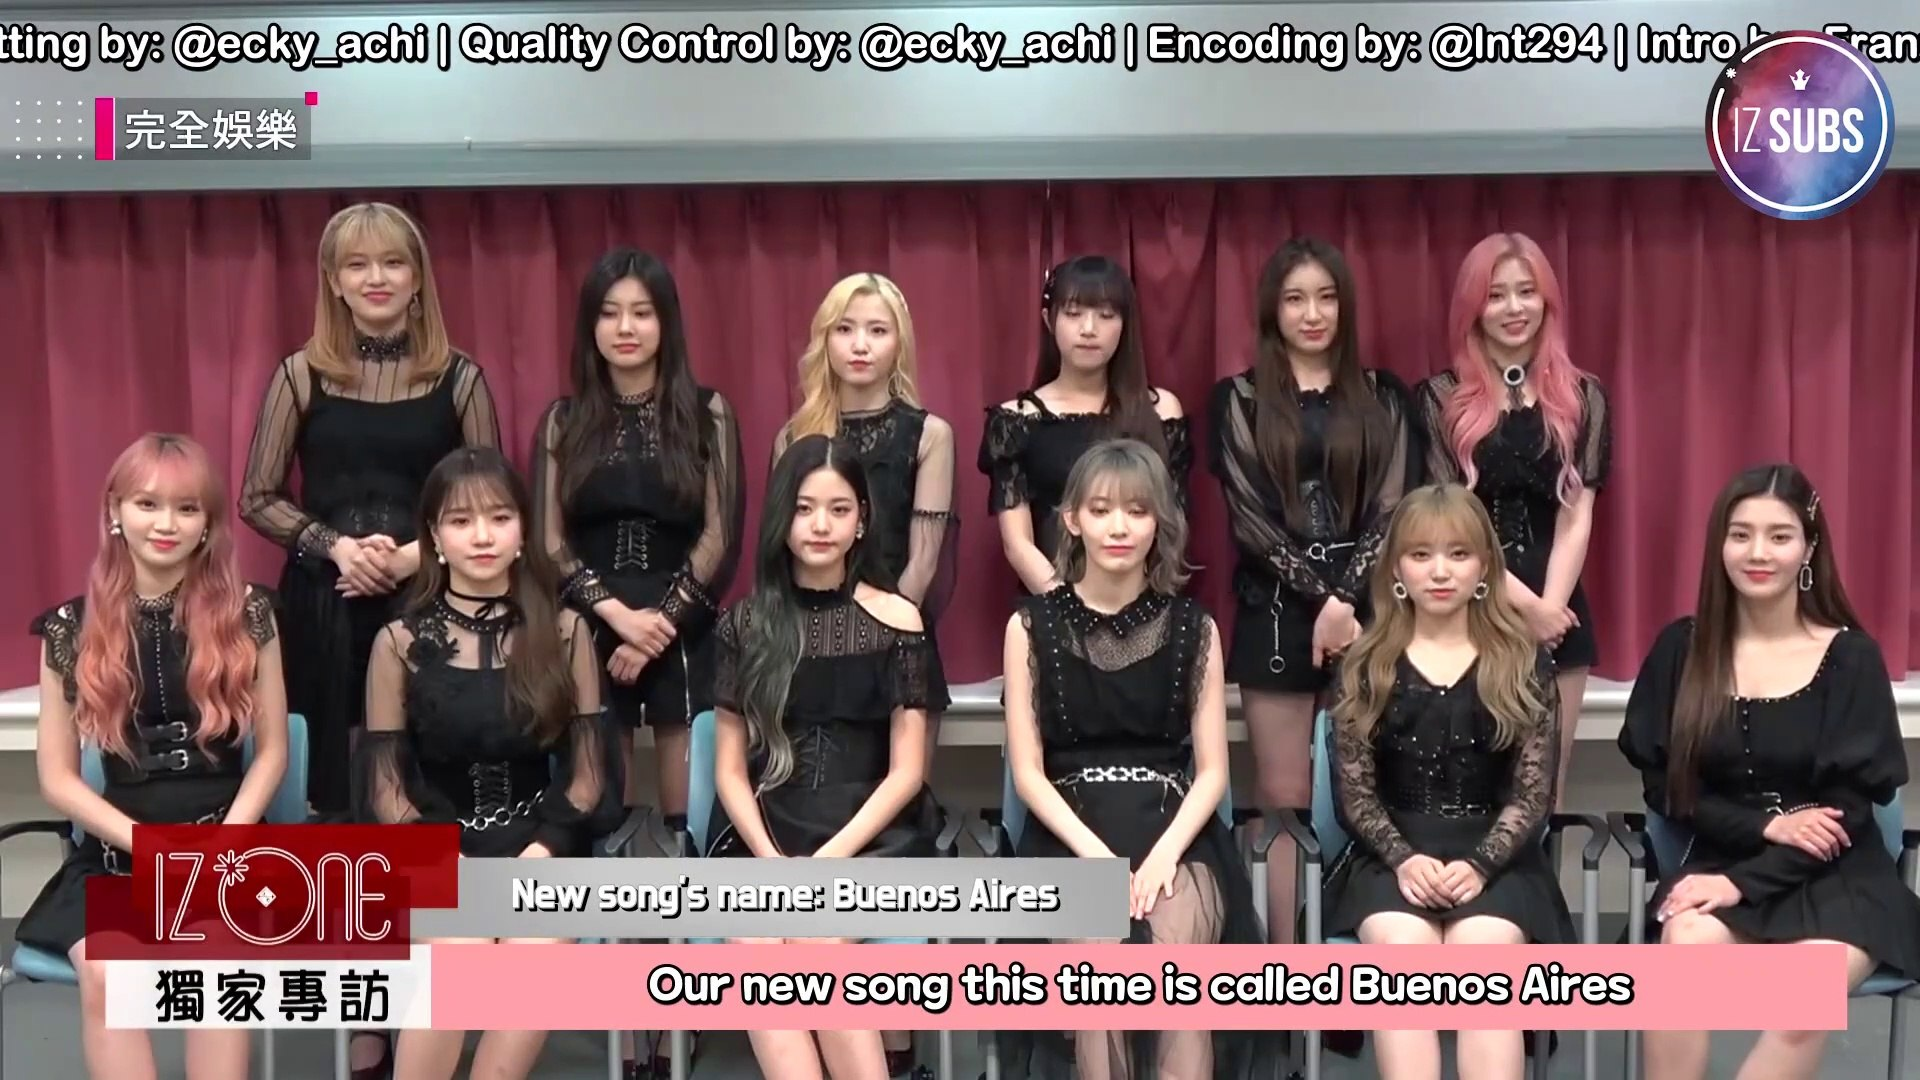 [ENG SUB] 190712【WIZ*ONE】IZ*ONE Exclusive Interview! So This Is How the Members See Each Other